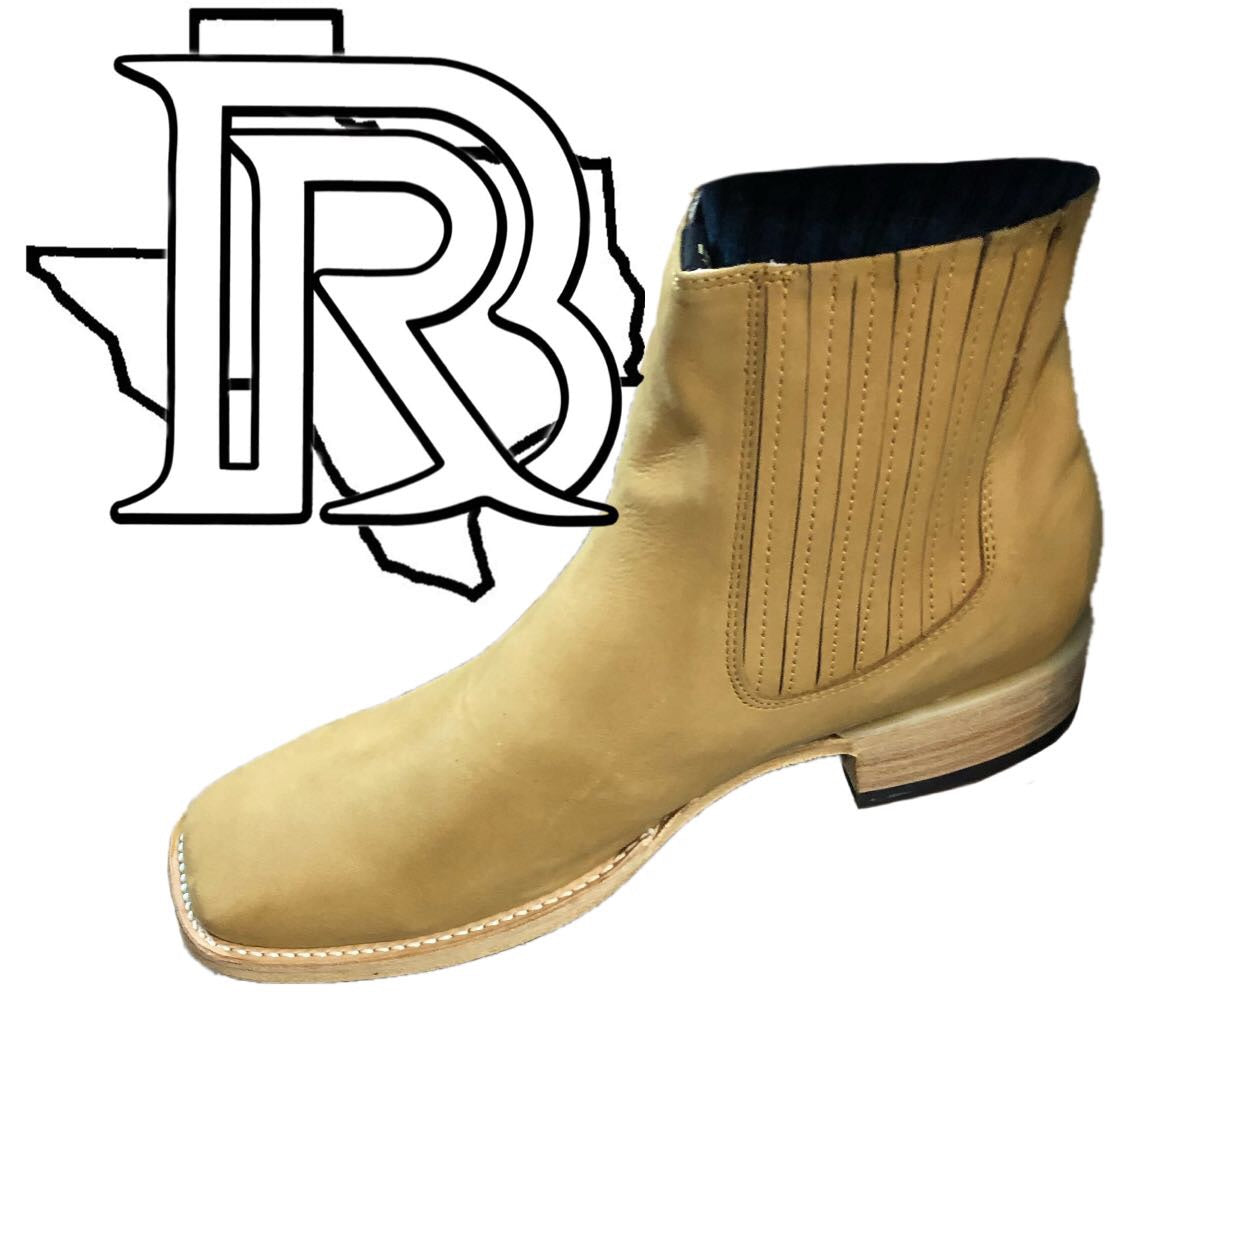 BR RIDING BOOTS ( Botines BR )